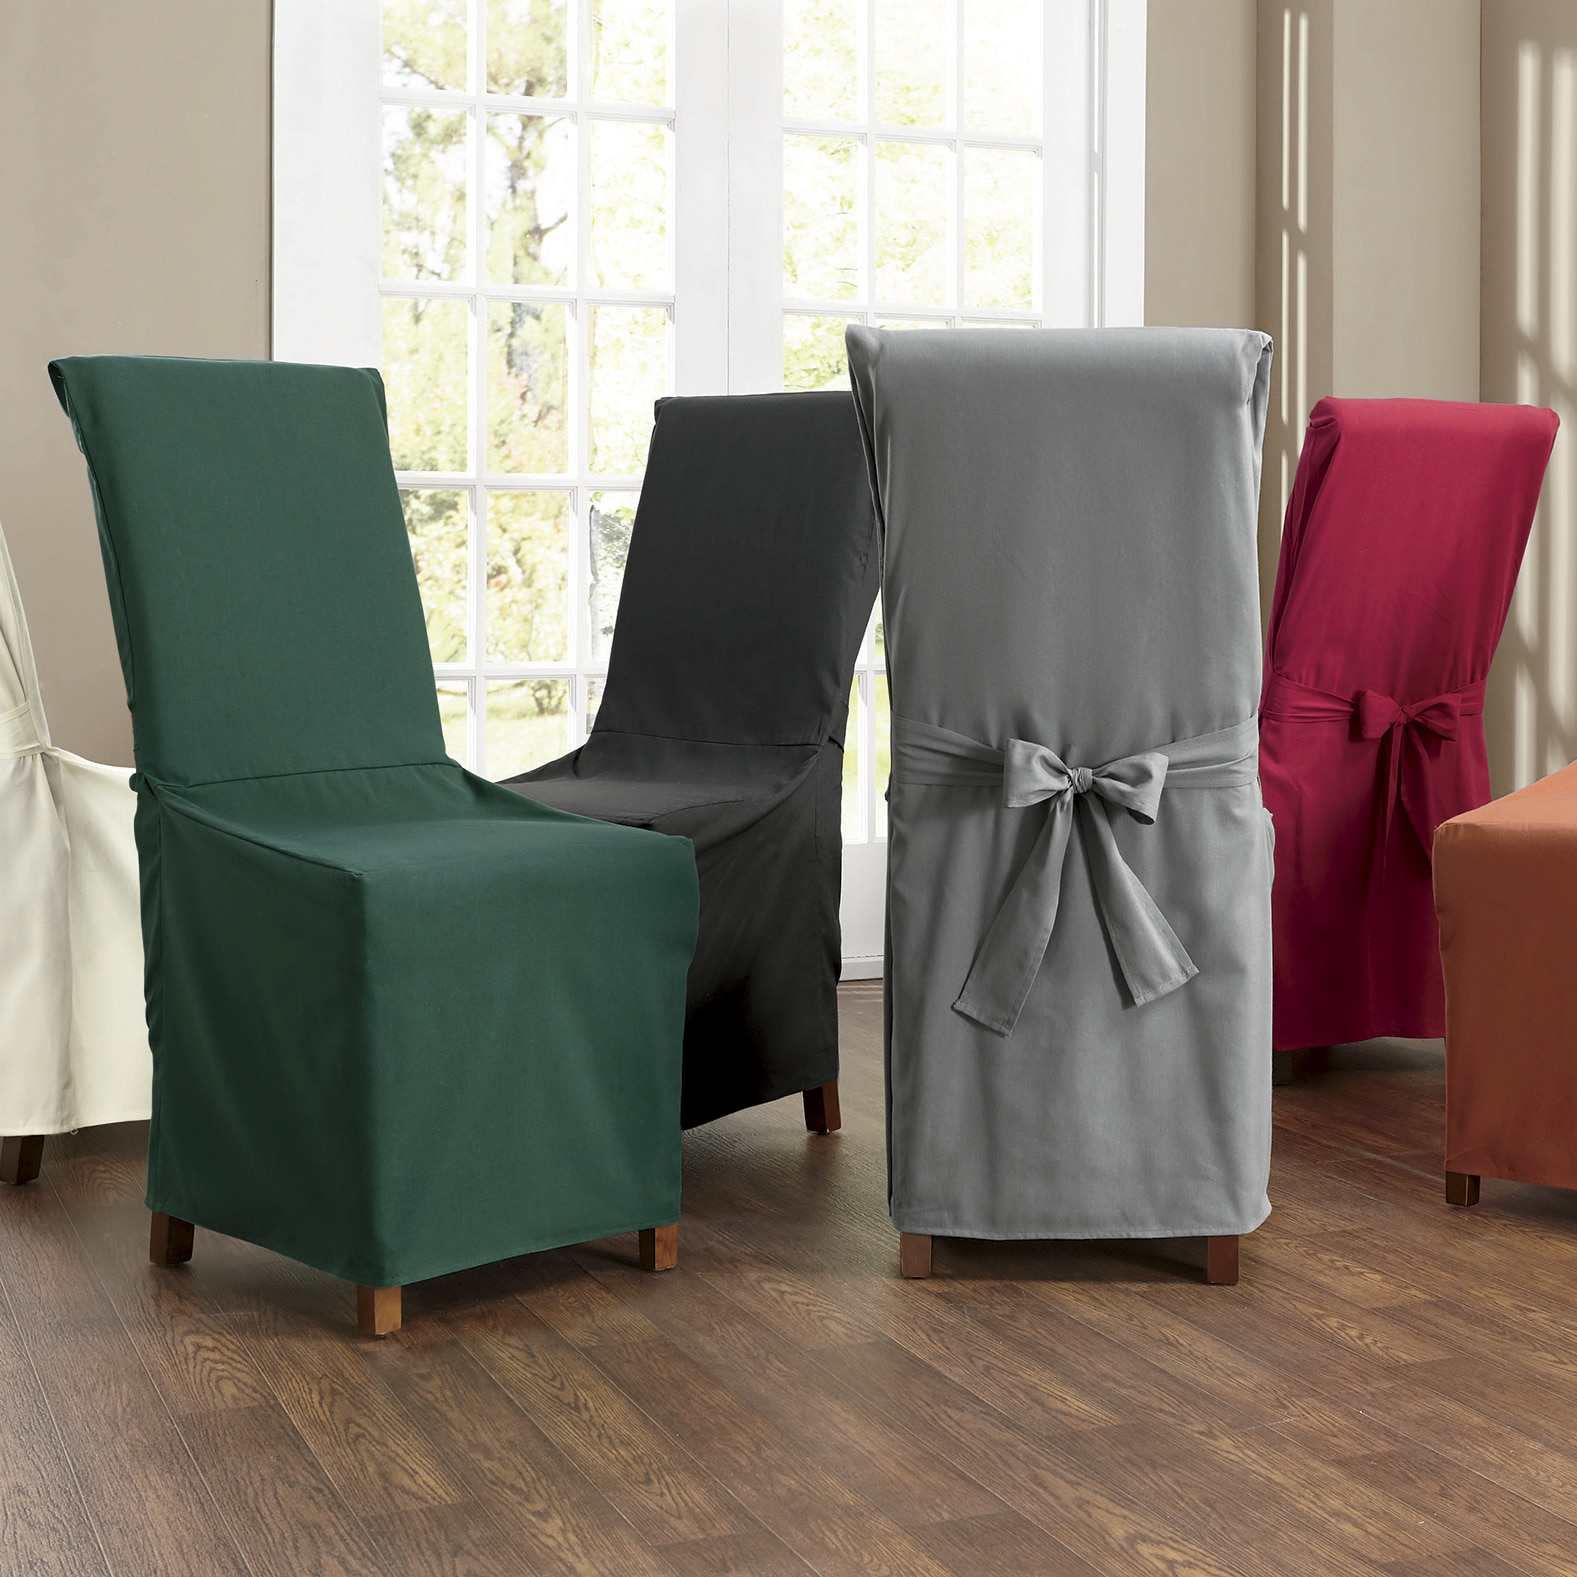 Fullsize Of Dining Chair Covers